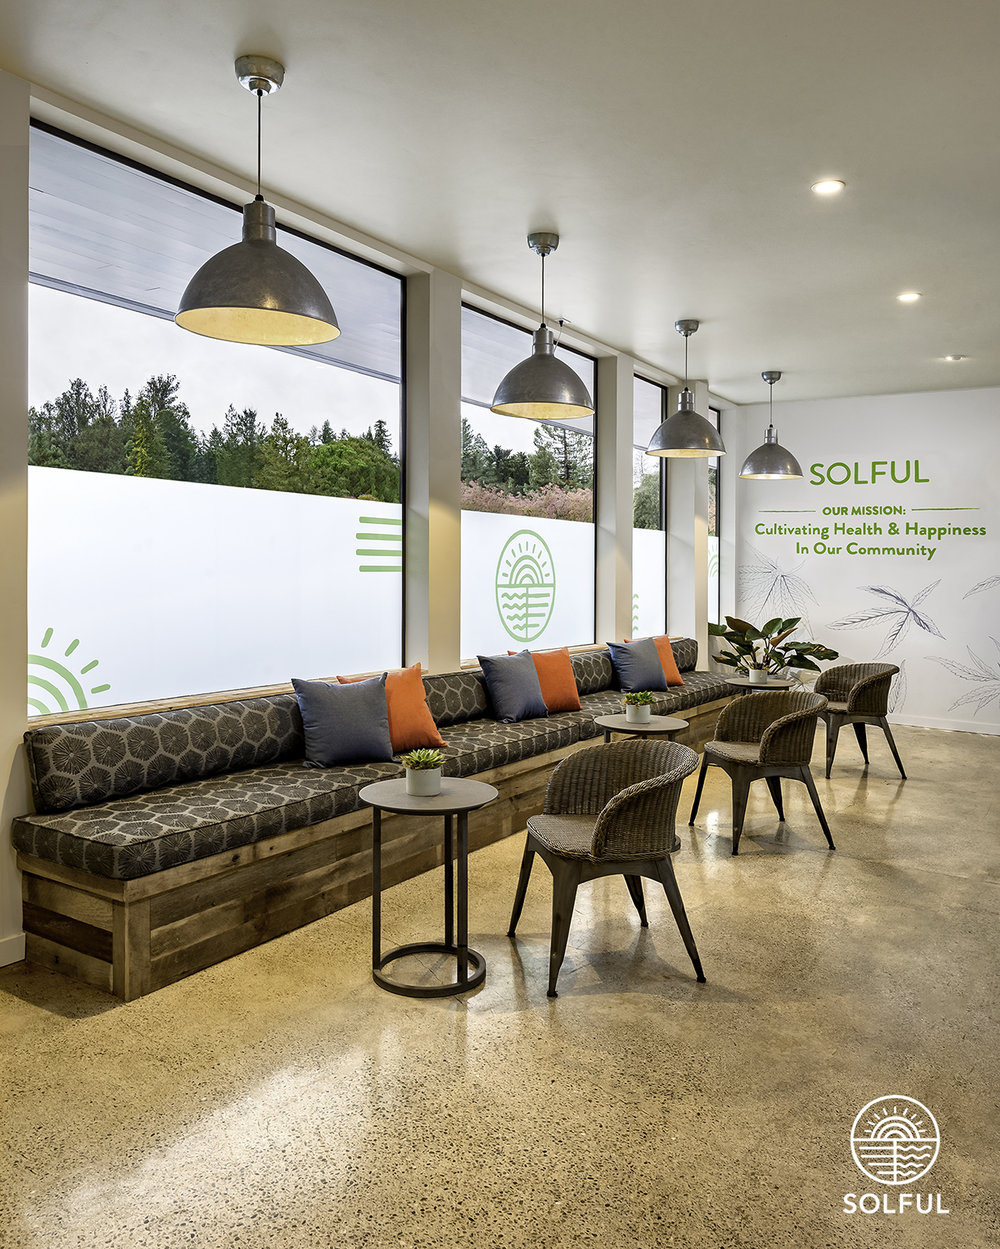 Solful Lobby with Logo.jpg